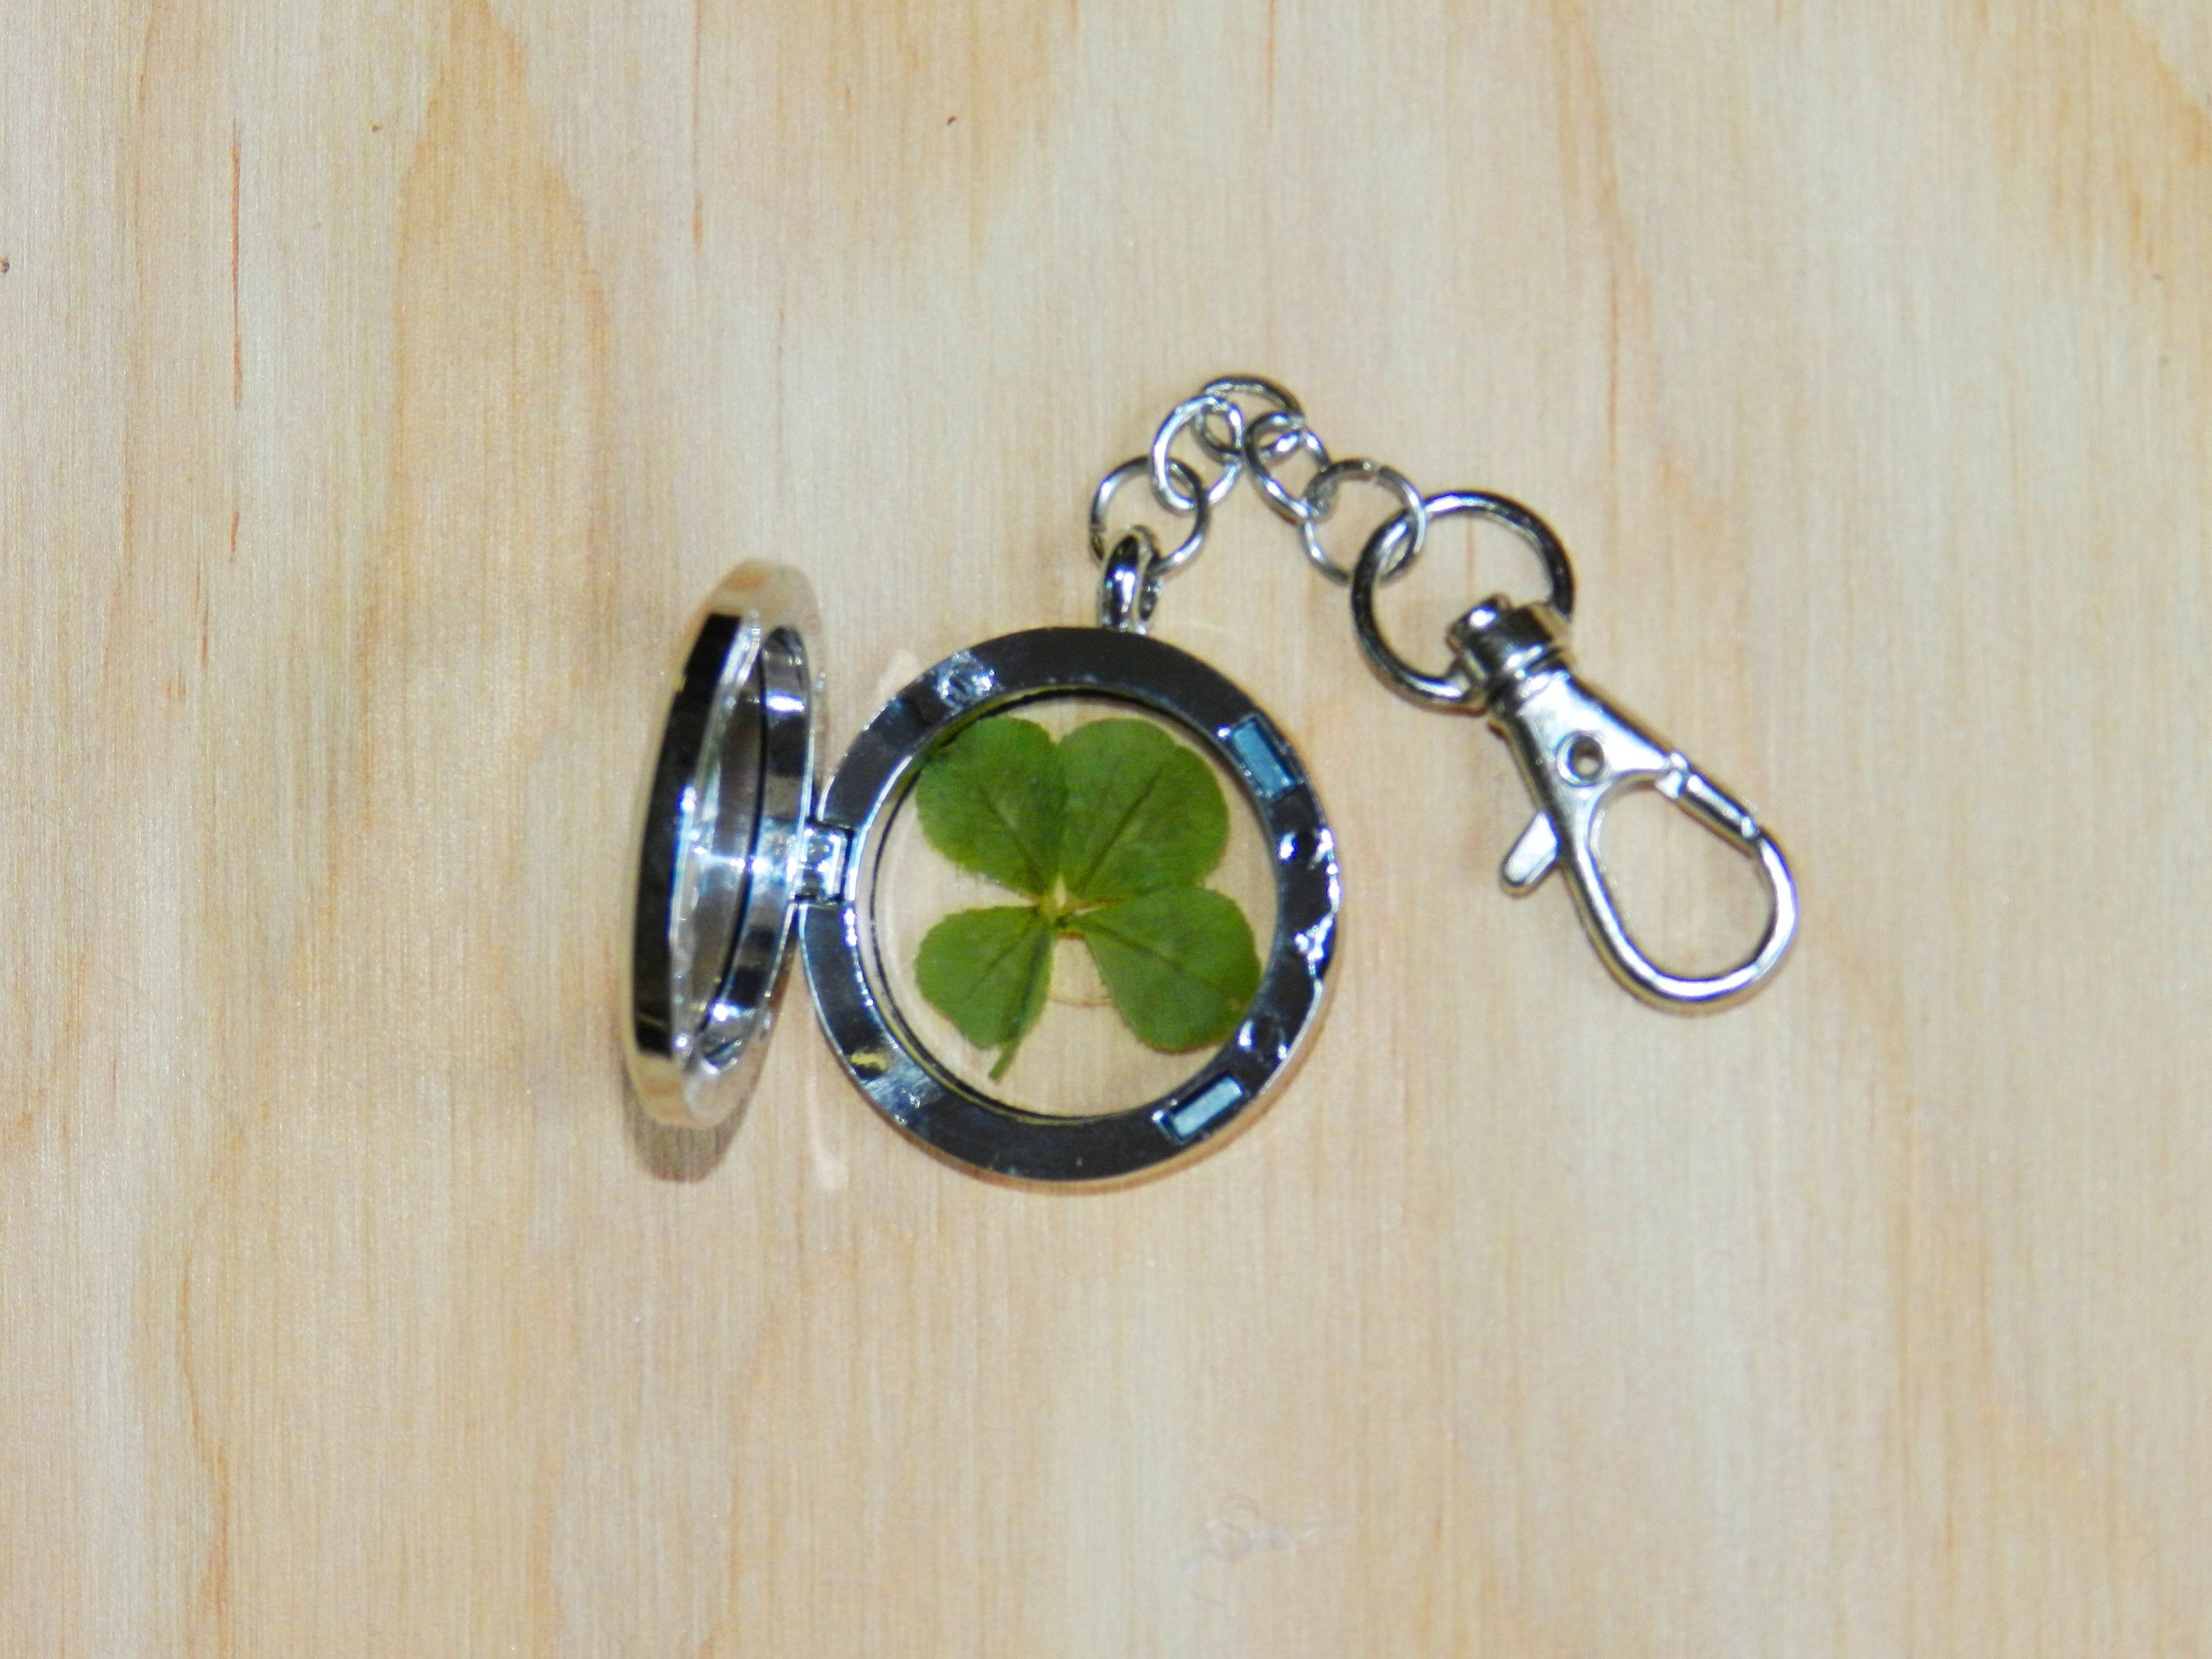 4 Four Leaf Clover Keychain, Lucky Key Ring, Good Luck Charm With Regard To Recent Lucky Four Leaf Clover Dangle Charm Necklaces (View 2 of 25)